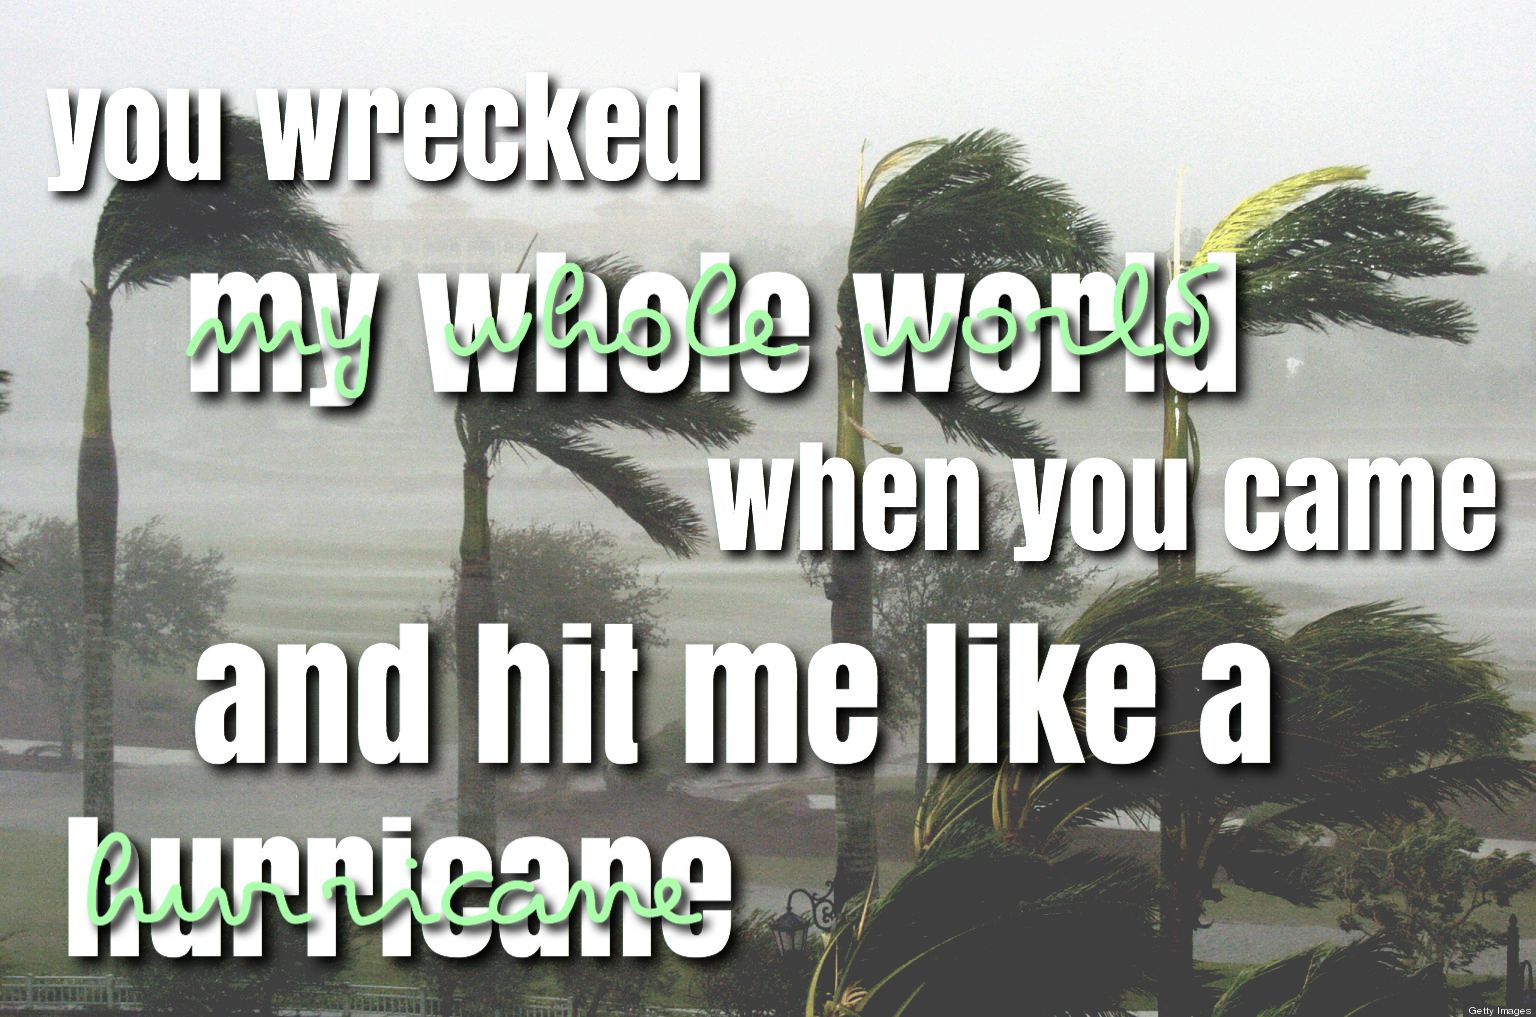 hurricane - luke combs | edits | Pinterest | Songs, Country song ...